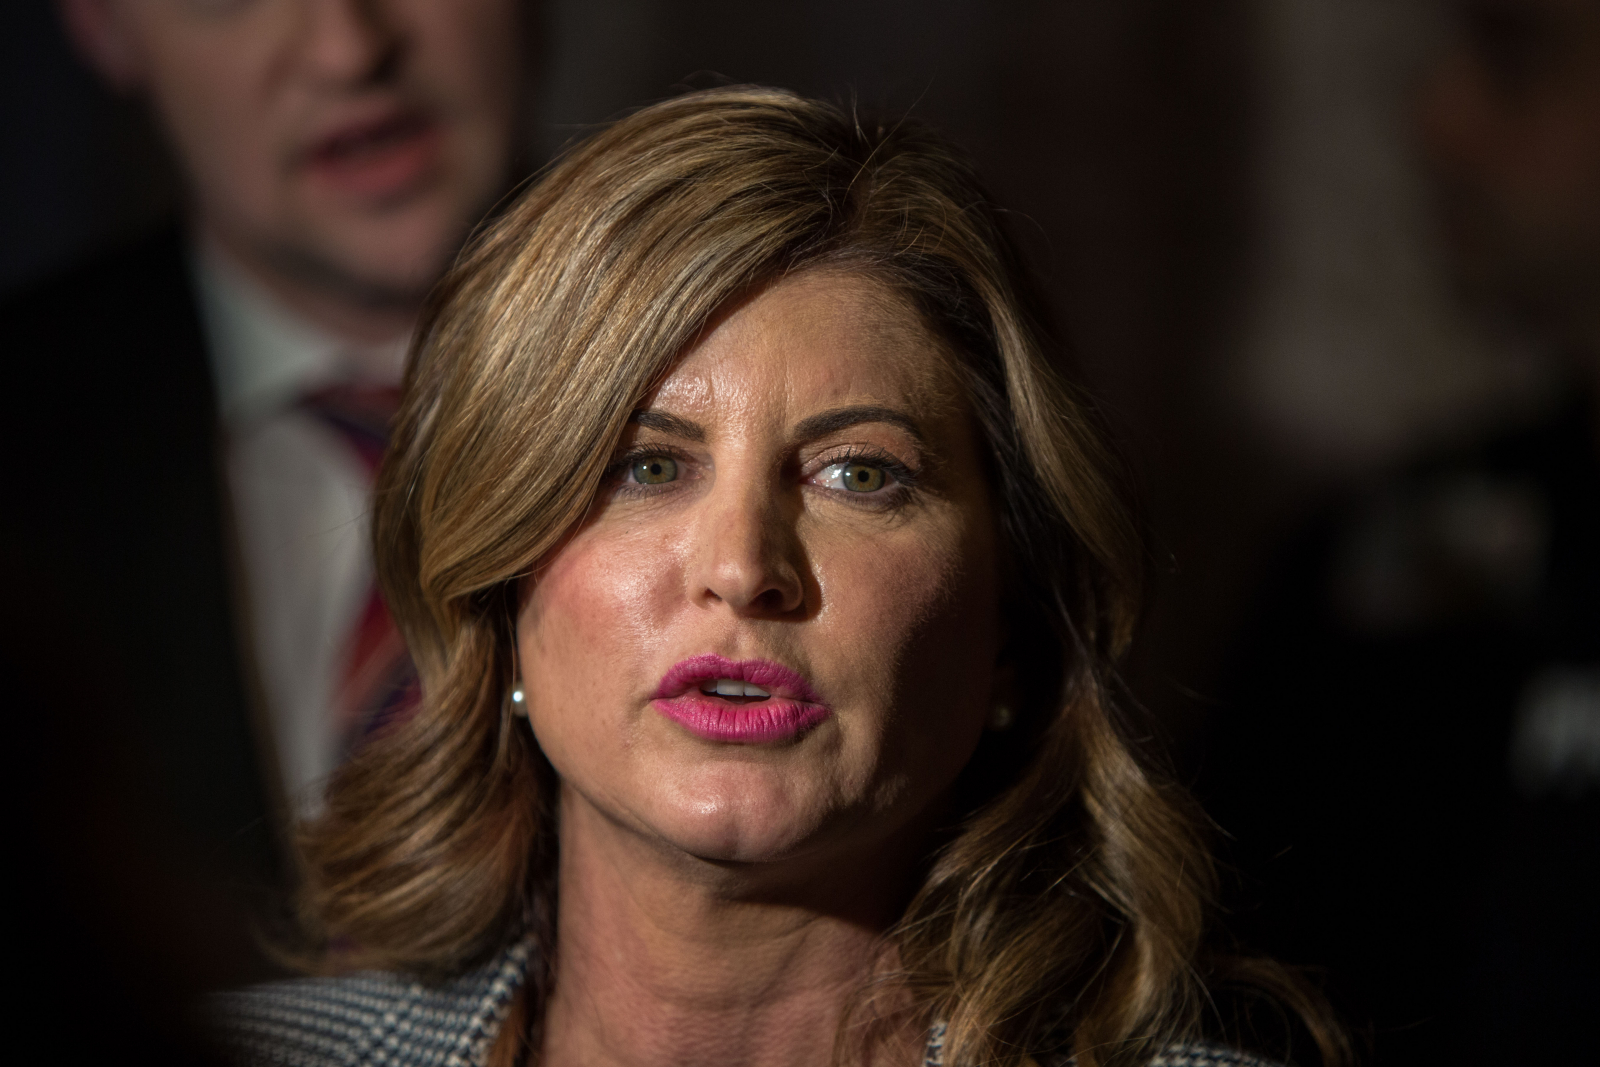 Rona ambrose hot sex, university pinay nude pics